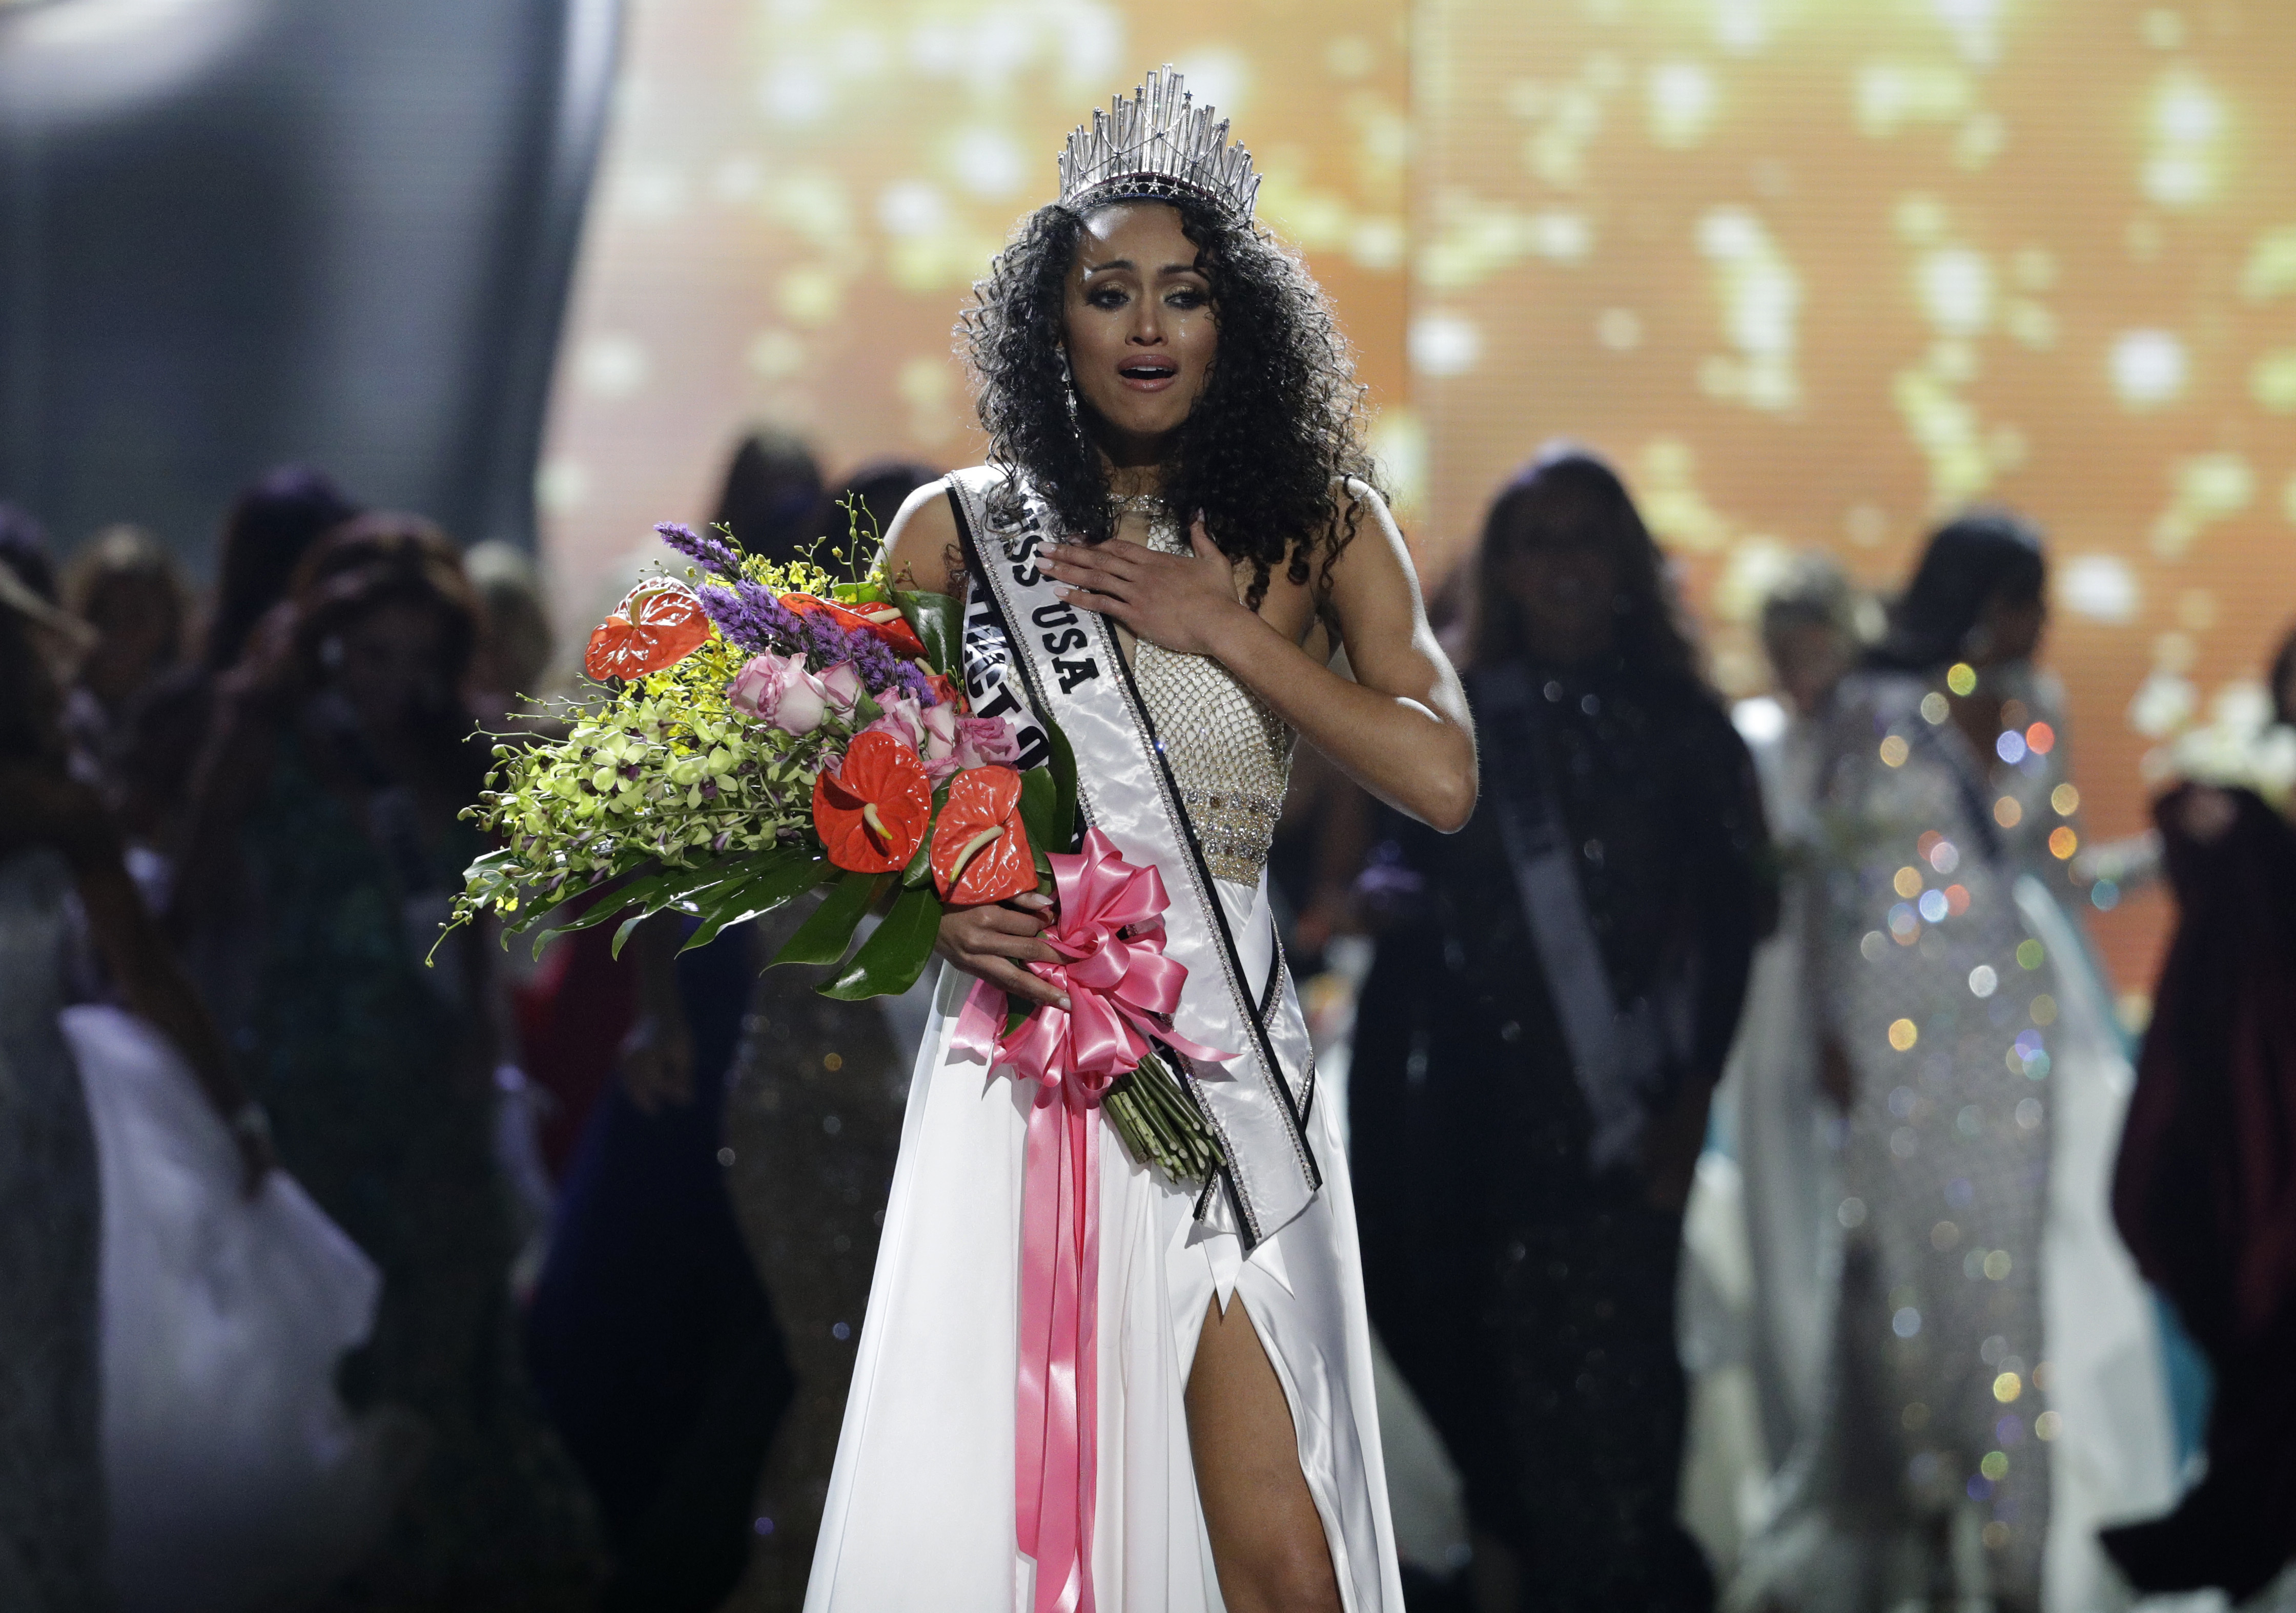 APTOPIX Miss USA Miss District of Columbia USA Kara McCullough reacts after she was crowned the new Miss USA during the Miss USA contest Sunday, May 14, 2017, in Las Vegas. (AP Photo/John Locher)